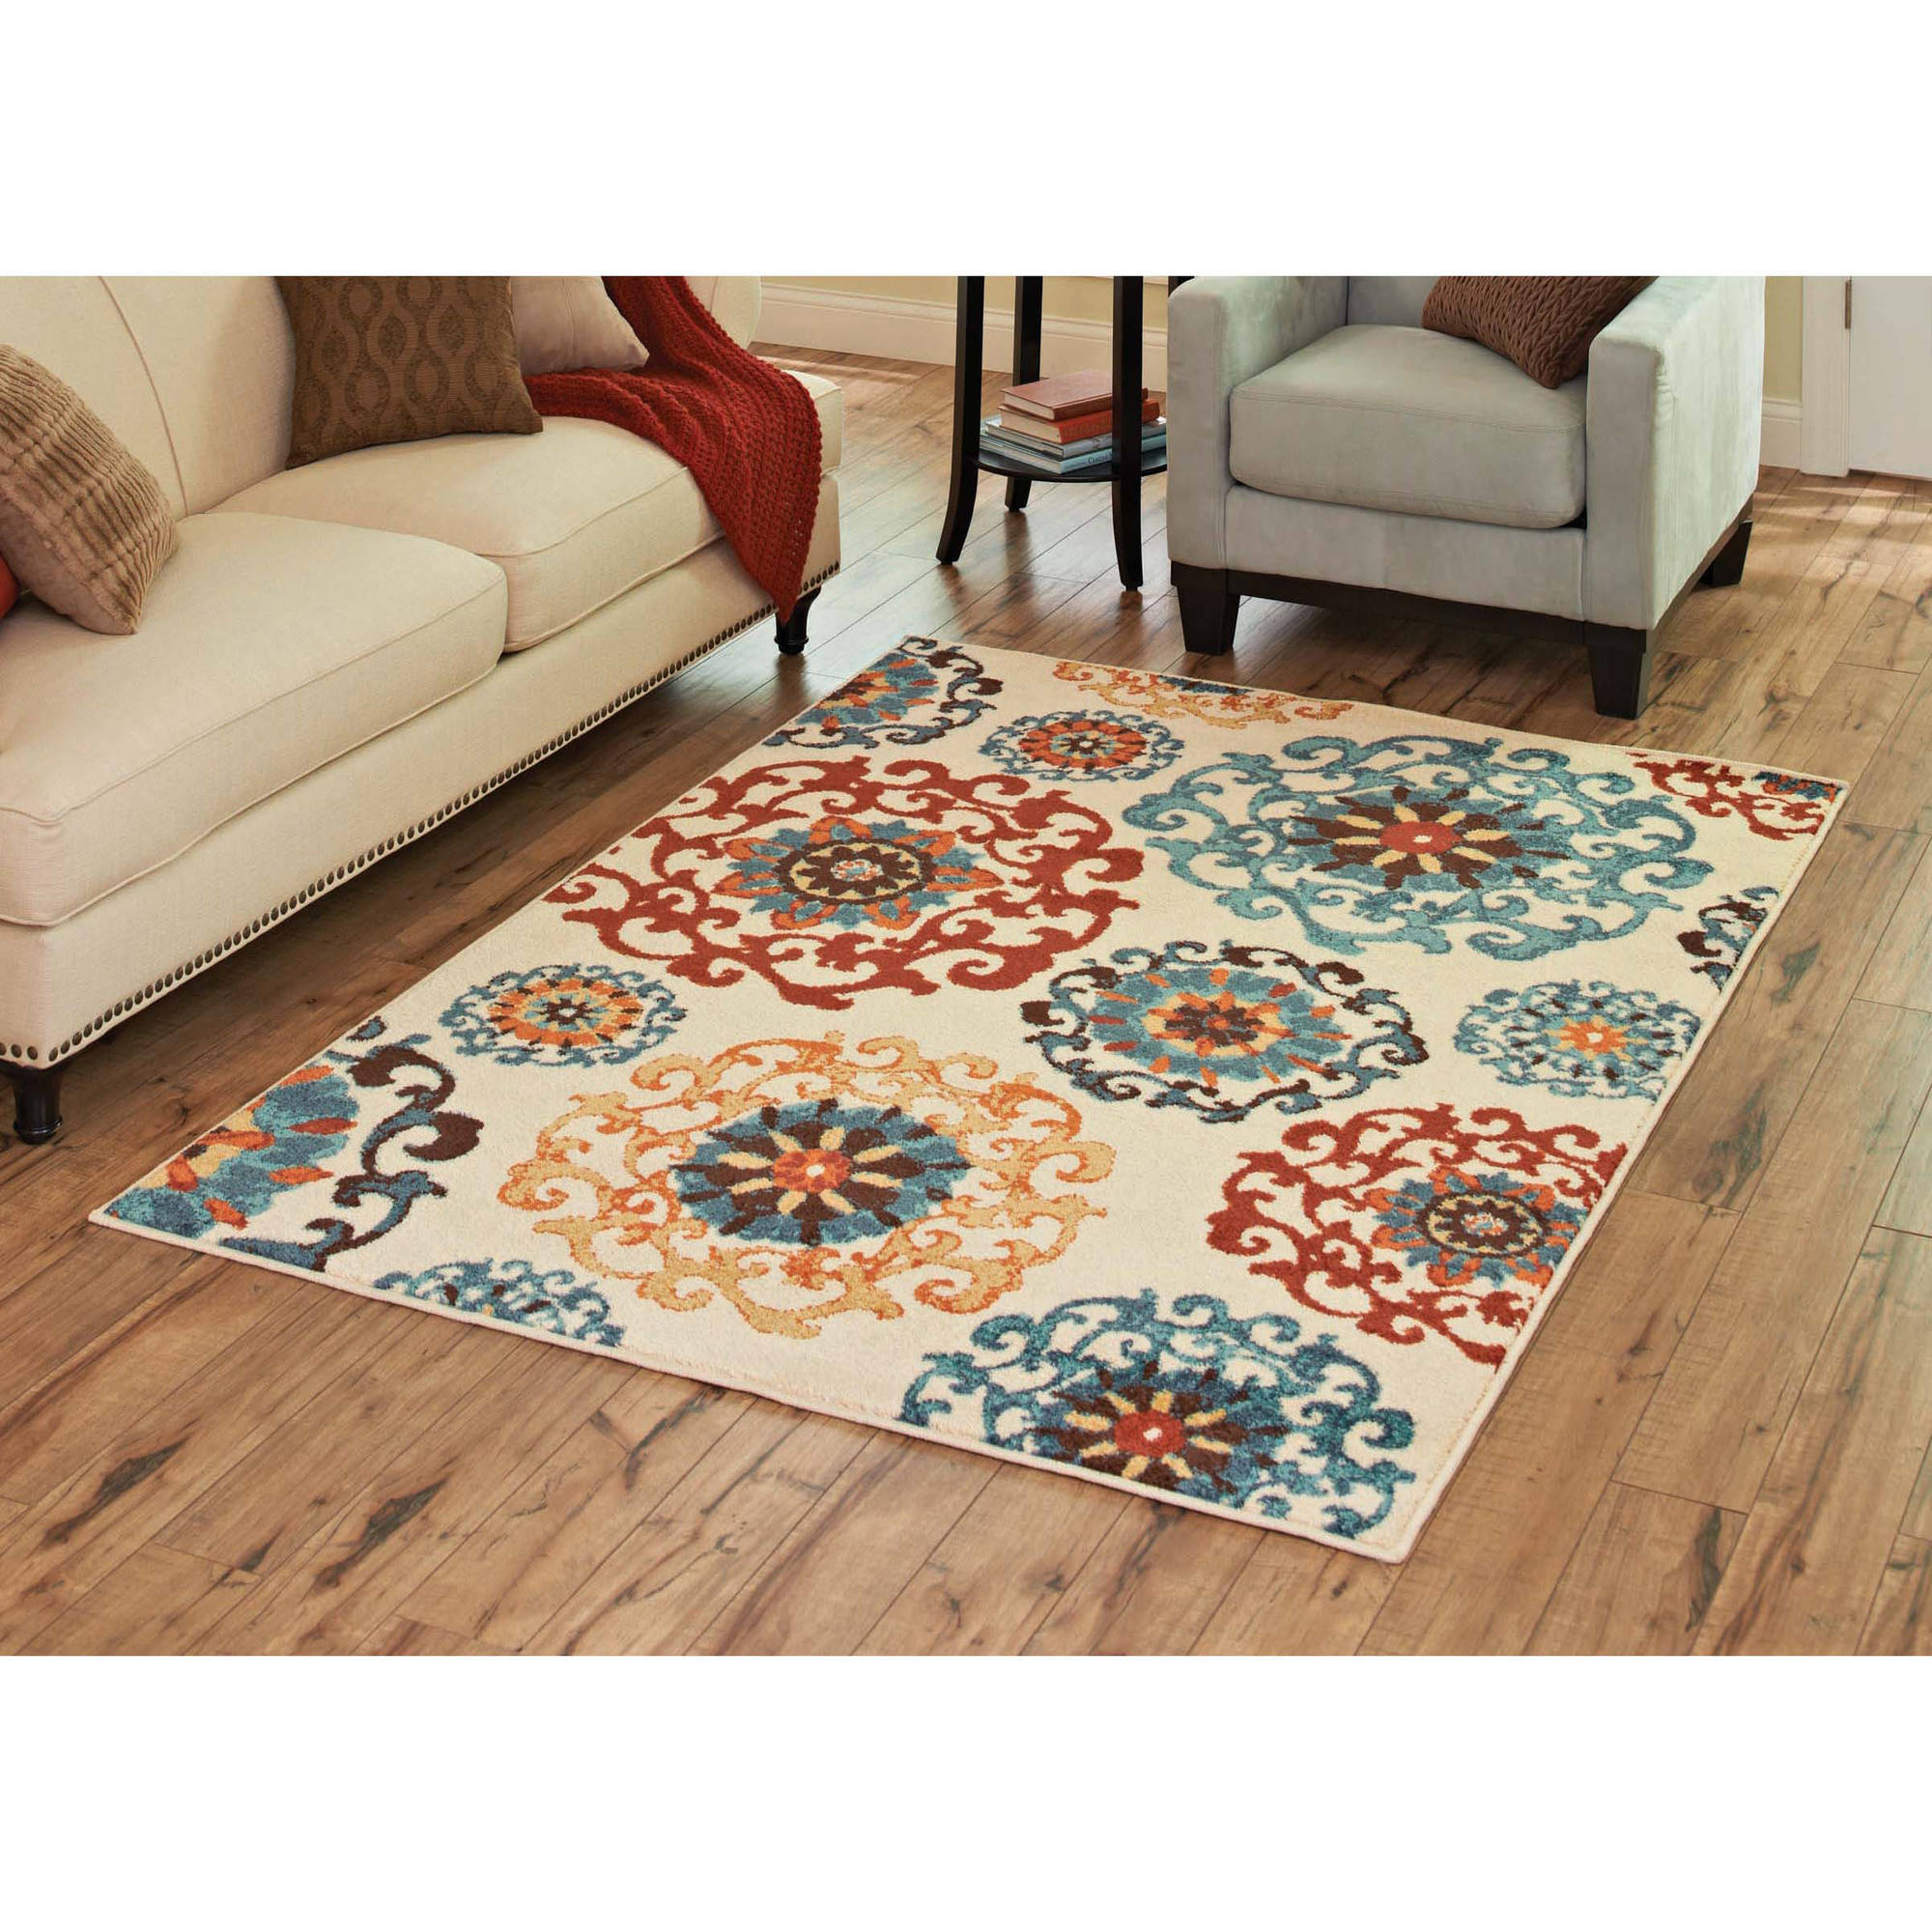 rug surging amalfi oriental home living area ivory scroll green innovative olefin admire ebay rugs gold blue x black